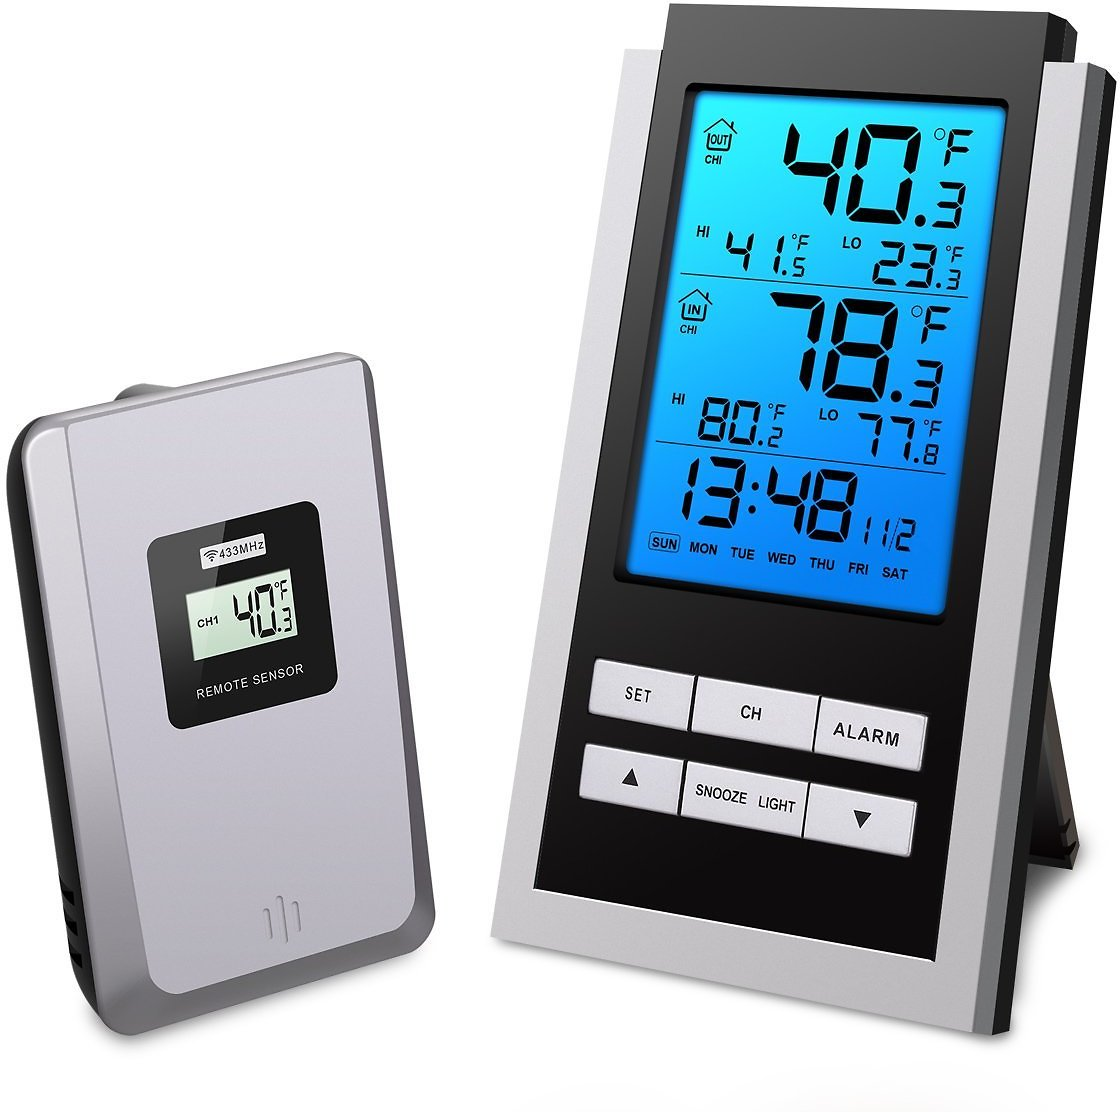 ORIA Indoor Outdoor Thermometer, Digital Wireless Temperature Monitor, LCD Screen Remote Thermometer, ℃ and ℉ Switch, with Alarm Clock and Snooze Function for Home, Office (Battery Not Included)